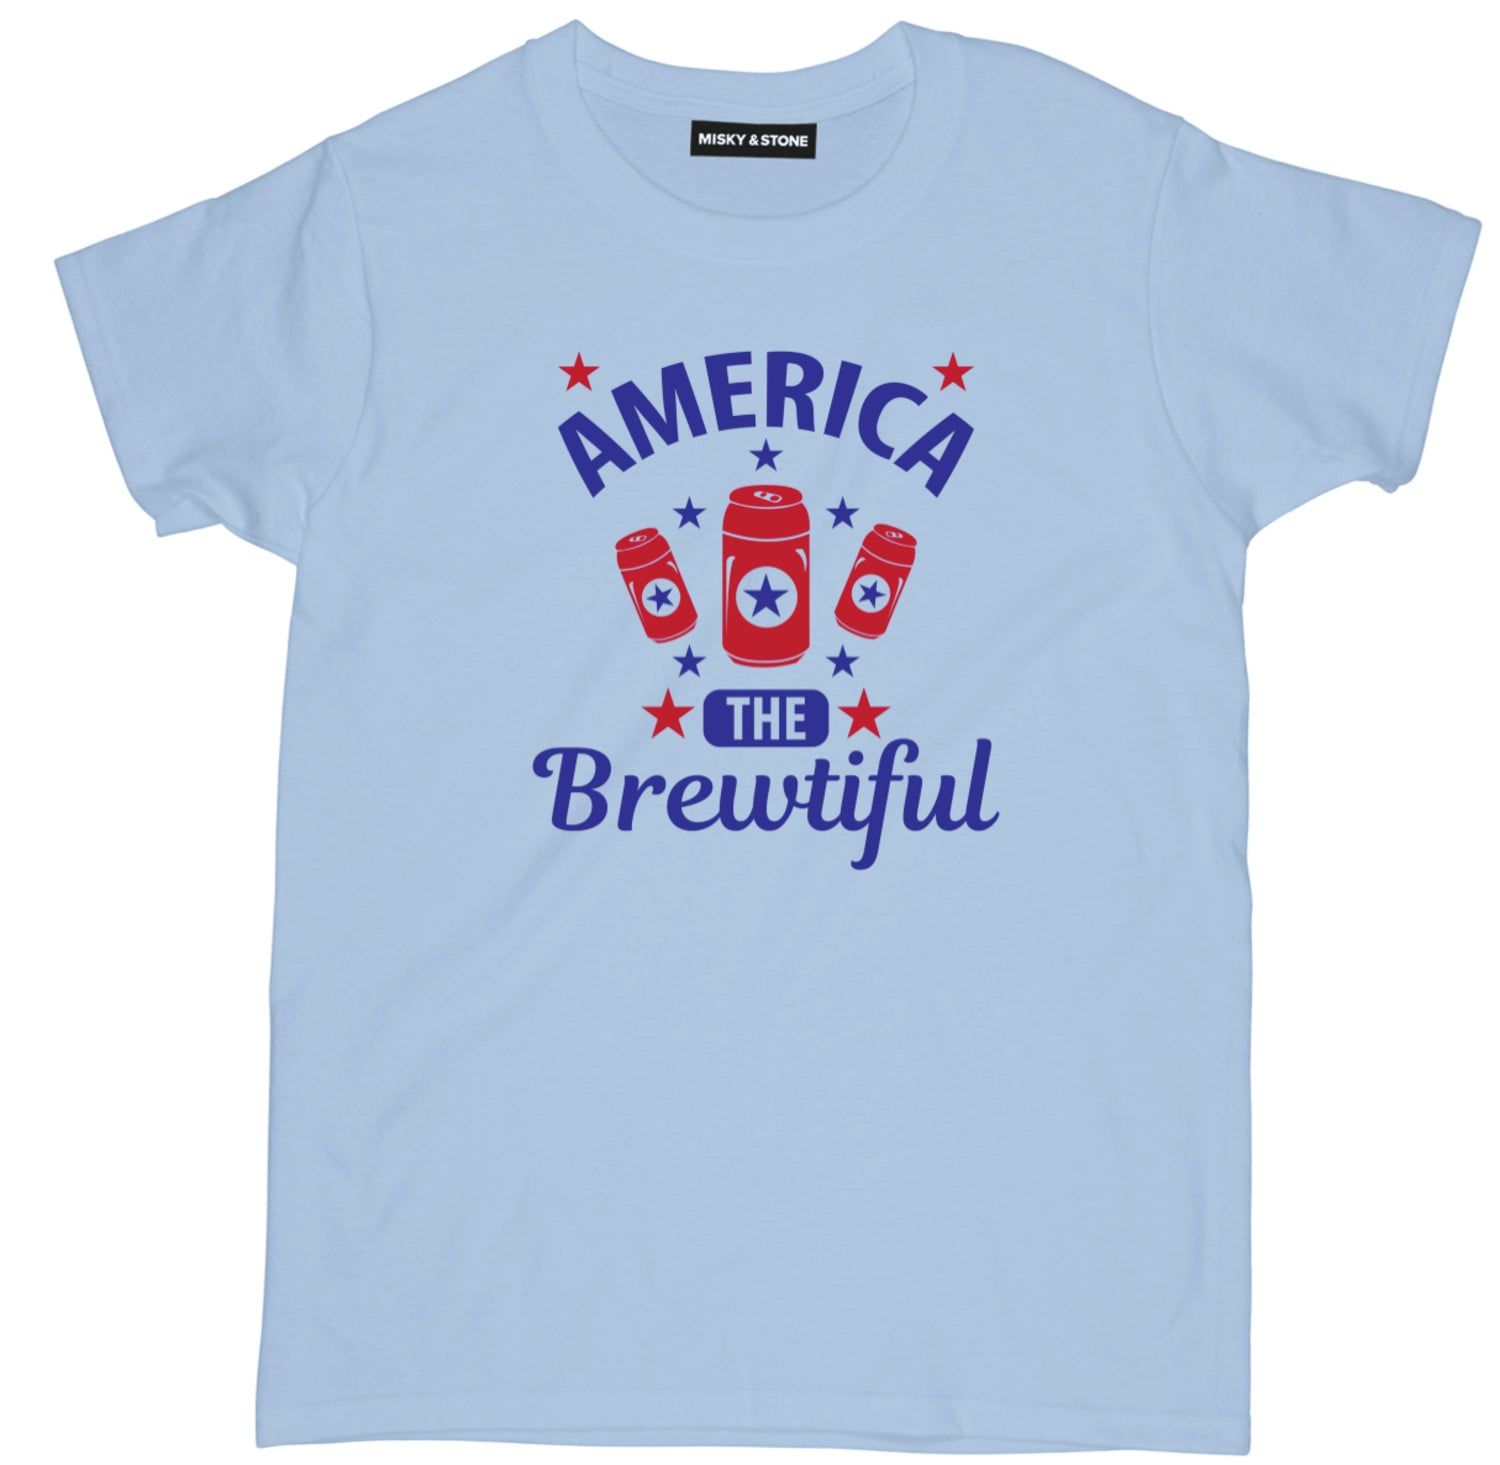 America The Brewtiful T Shirt